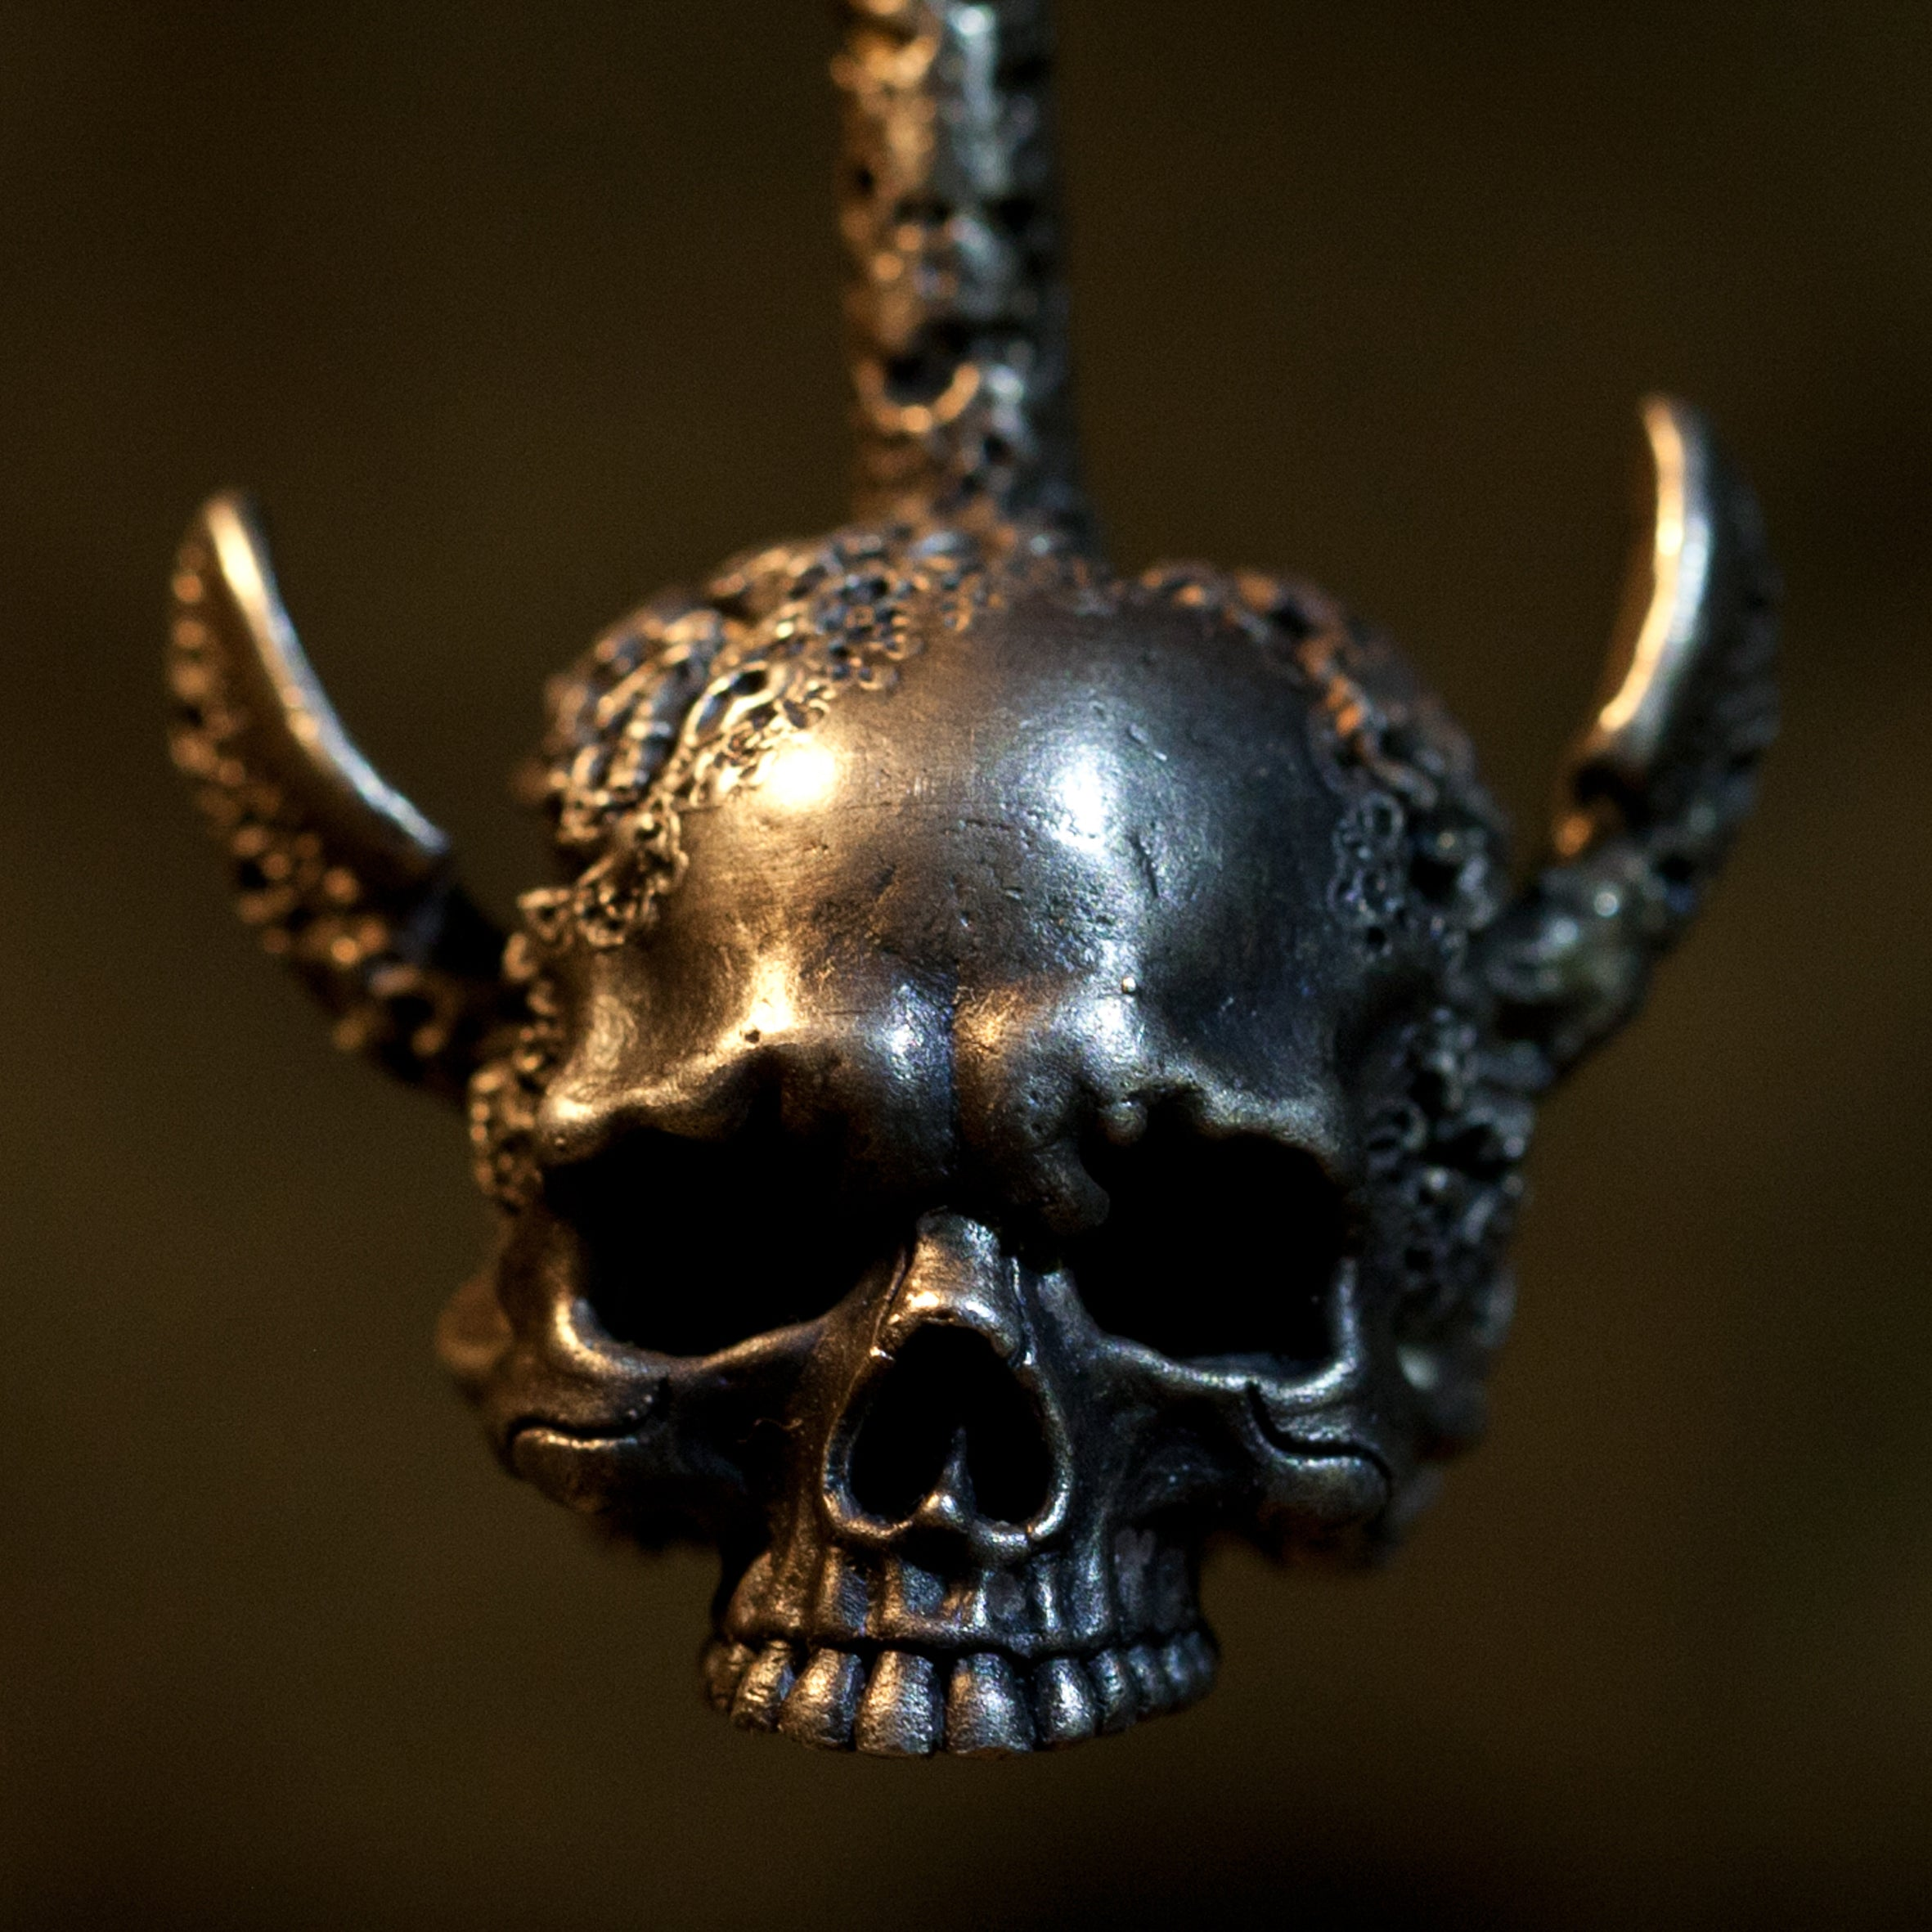 Hand sculpted silver skull and anchor pendant inspired in part by etchings of Giulio Casseri. Handmade by Damian Regan.